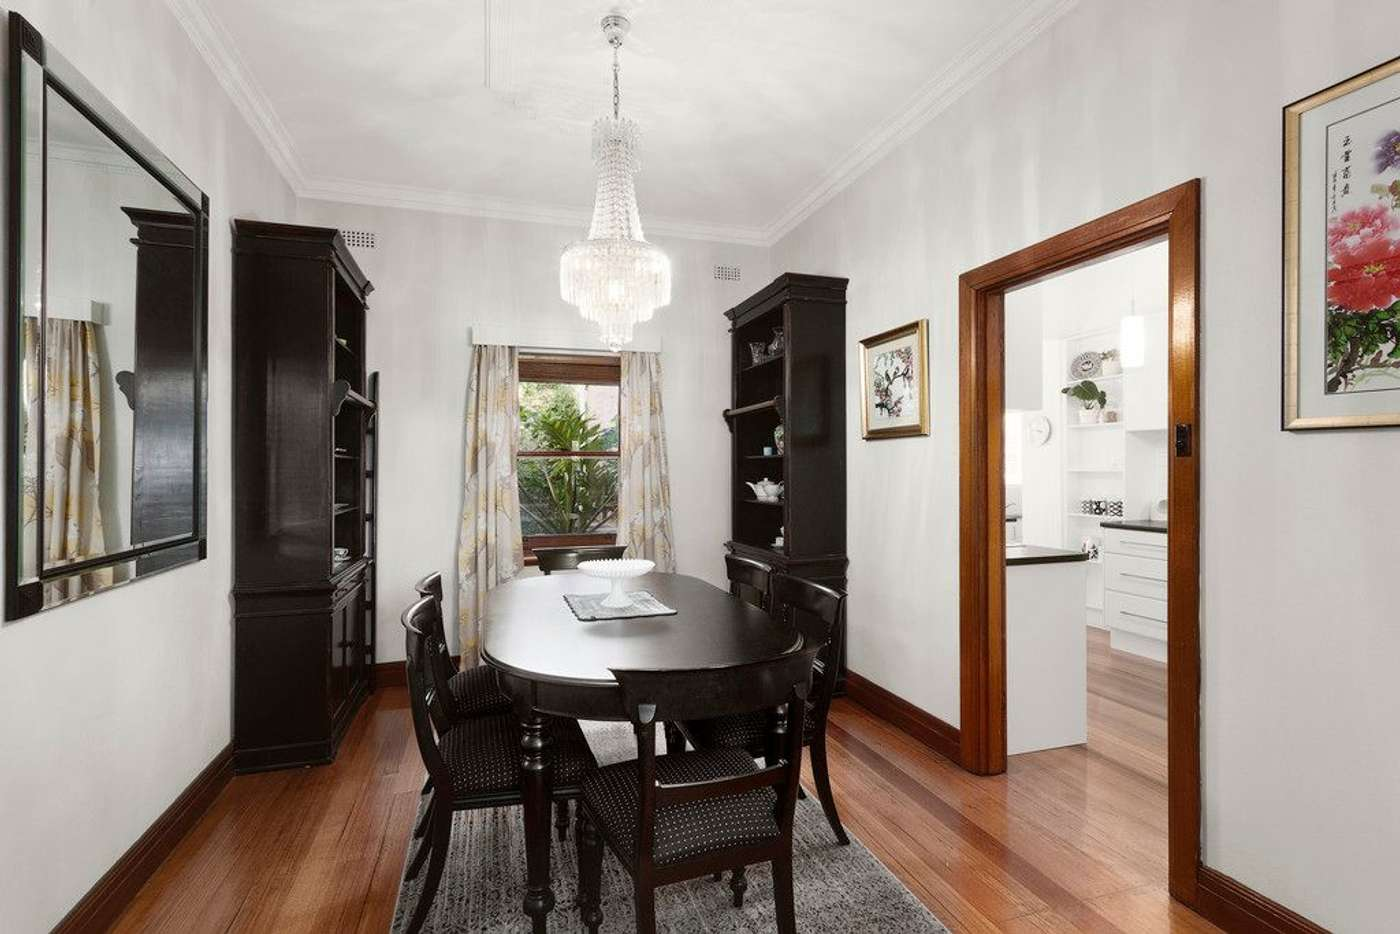 Fifth view of Homely house listing, 14 Kangaroo Road, Murrumbeena VIC 3163